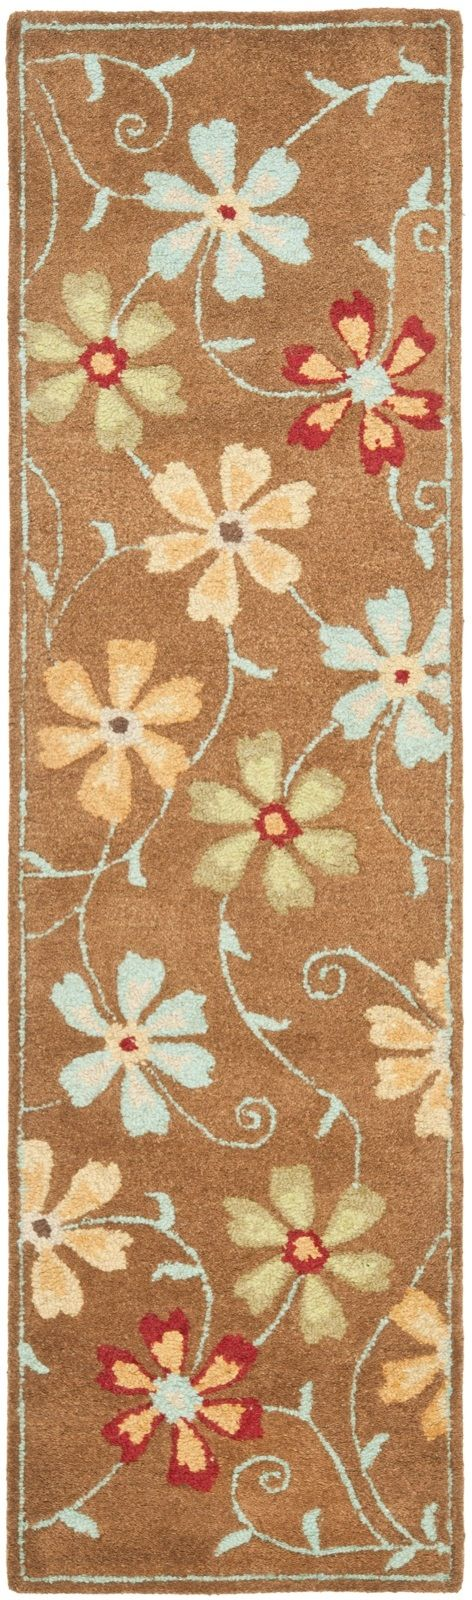 safavieh blossom country & floral area rug collection